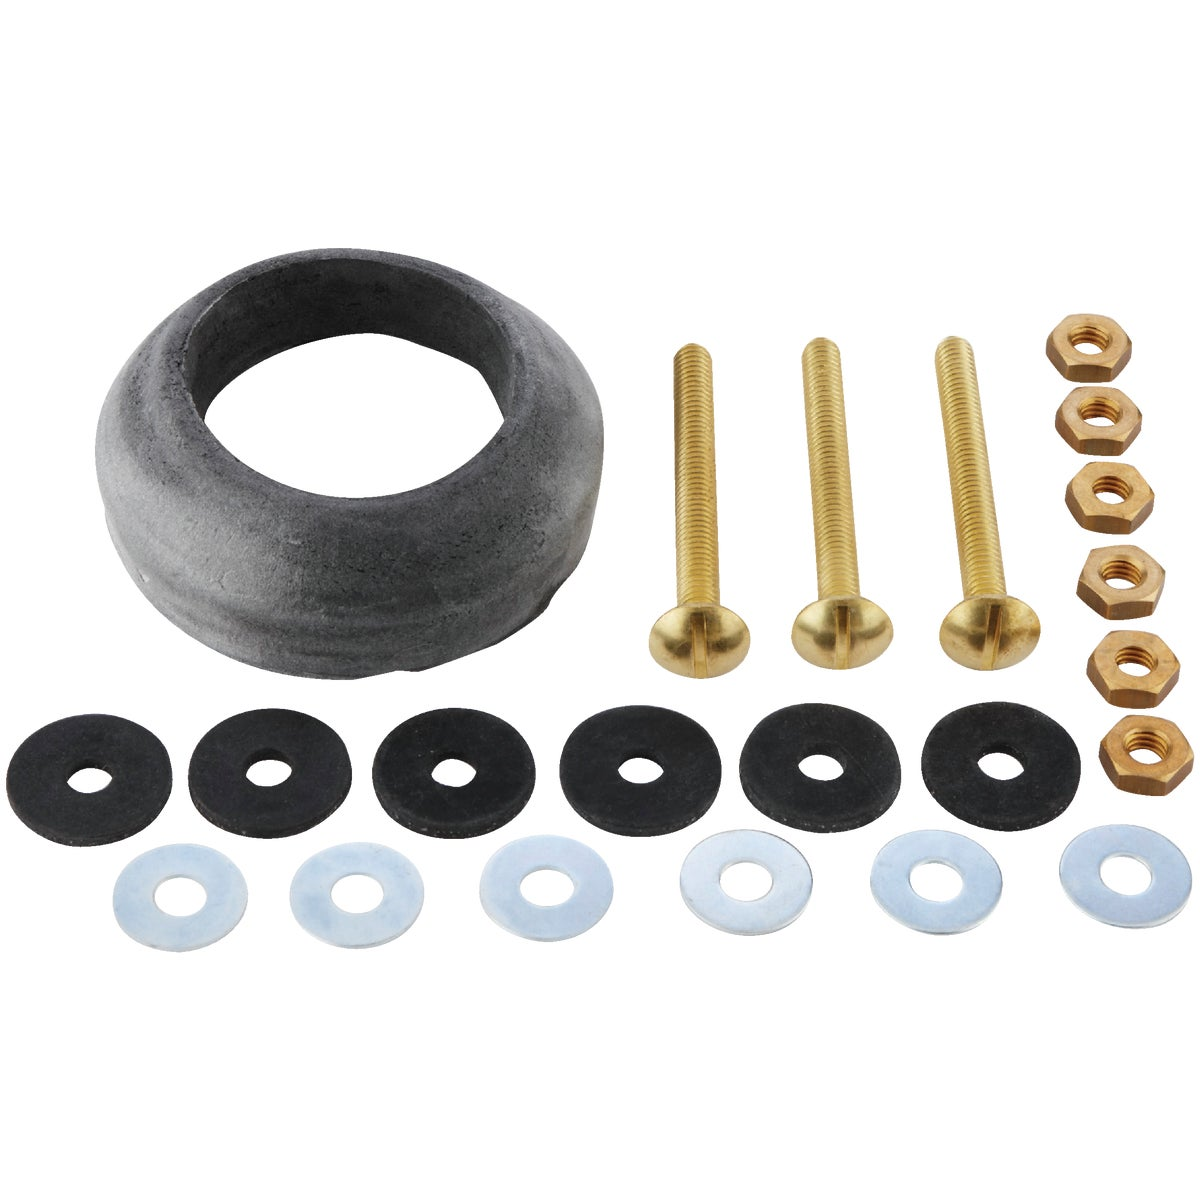 TANK BOLT KIT - 072055 by Do it Best